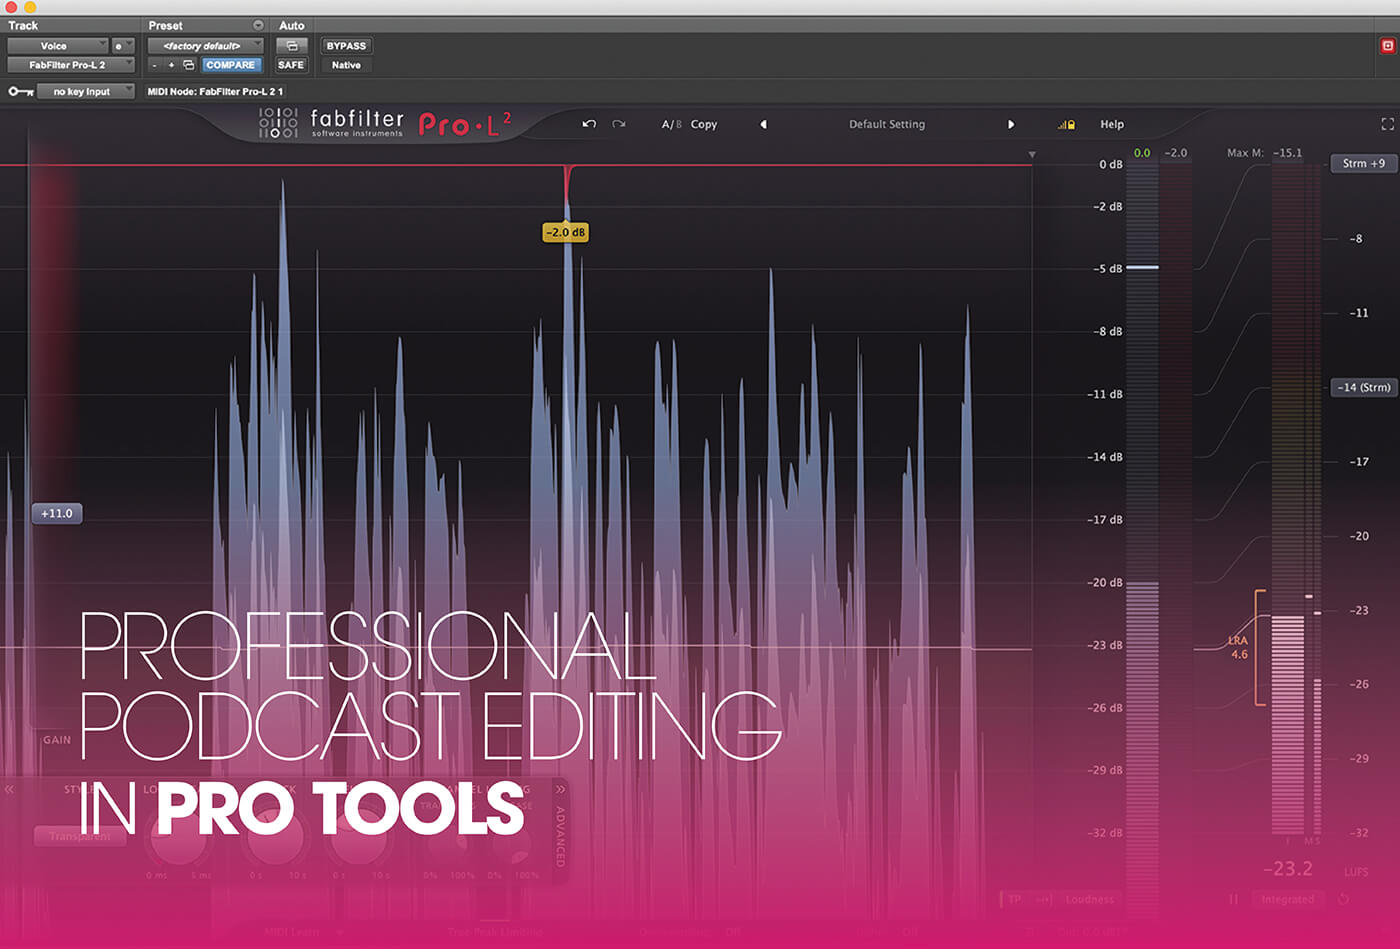 Professional podcast editing in Pro Tools